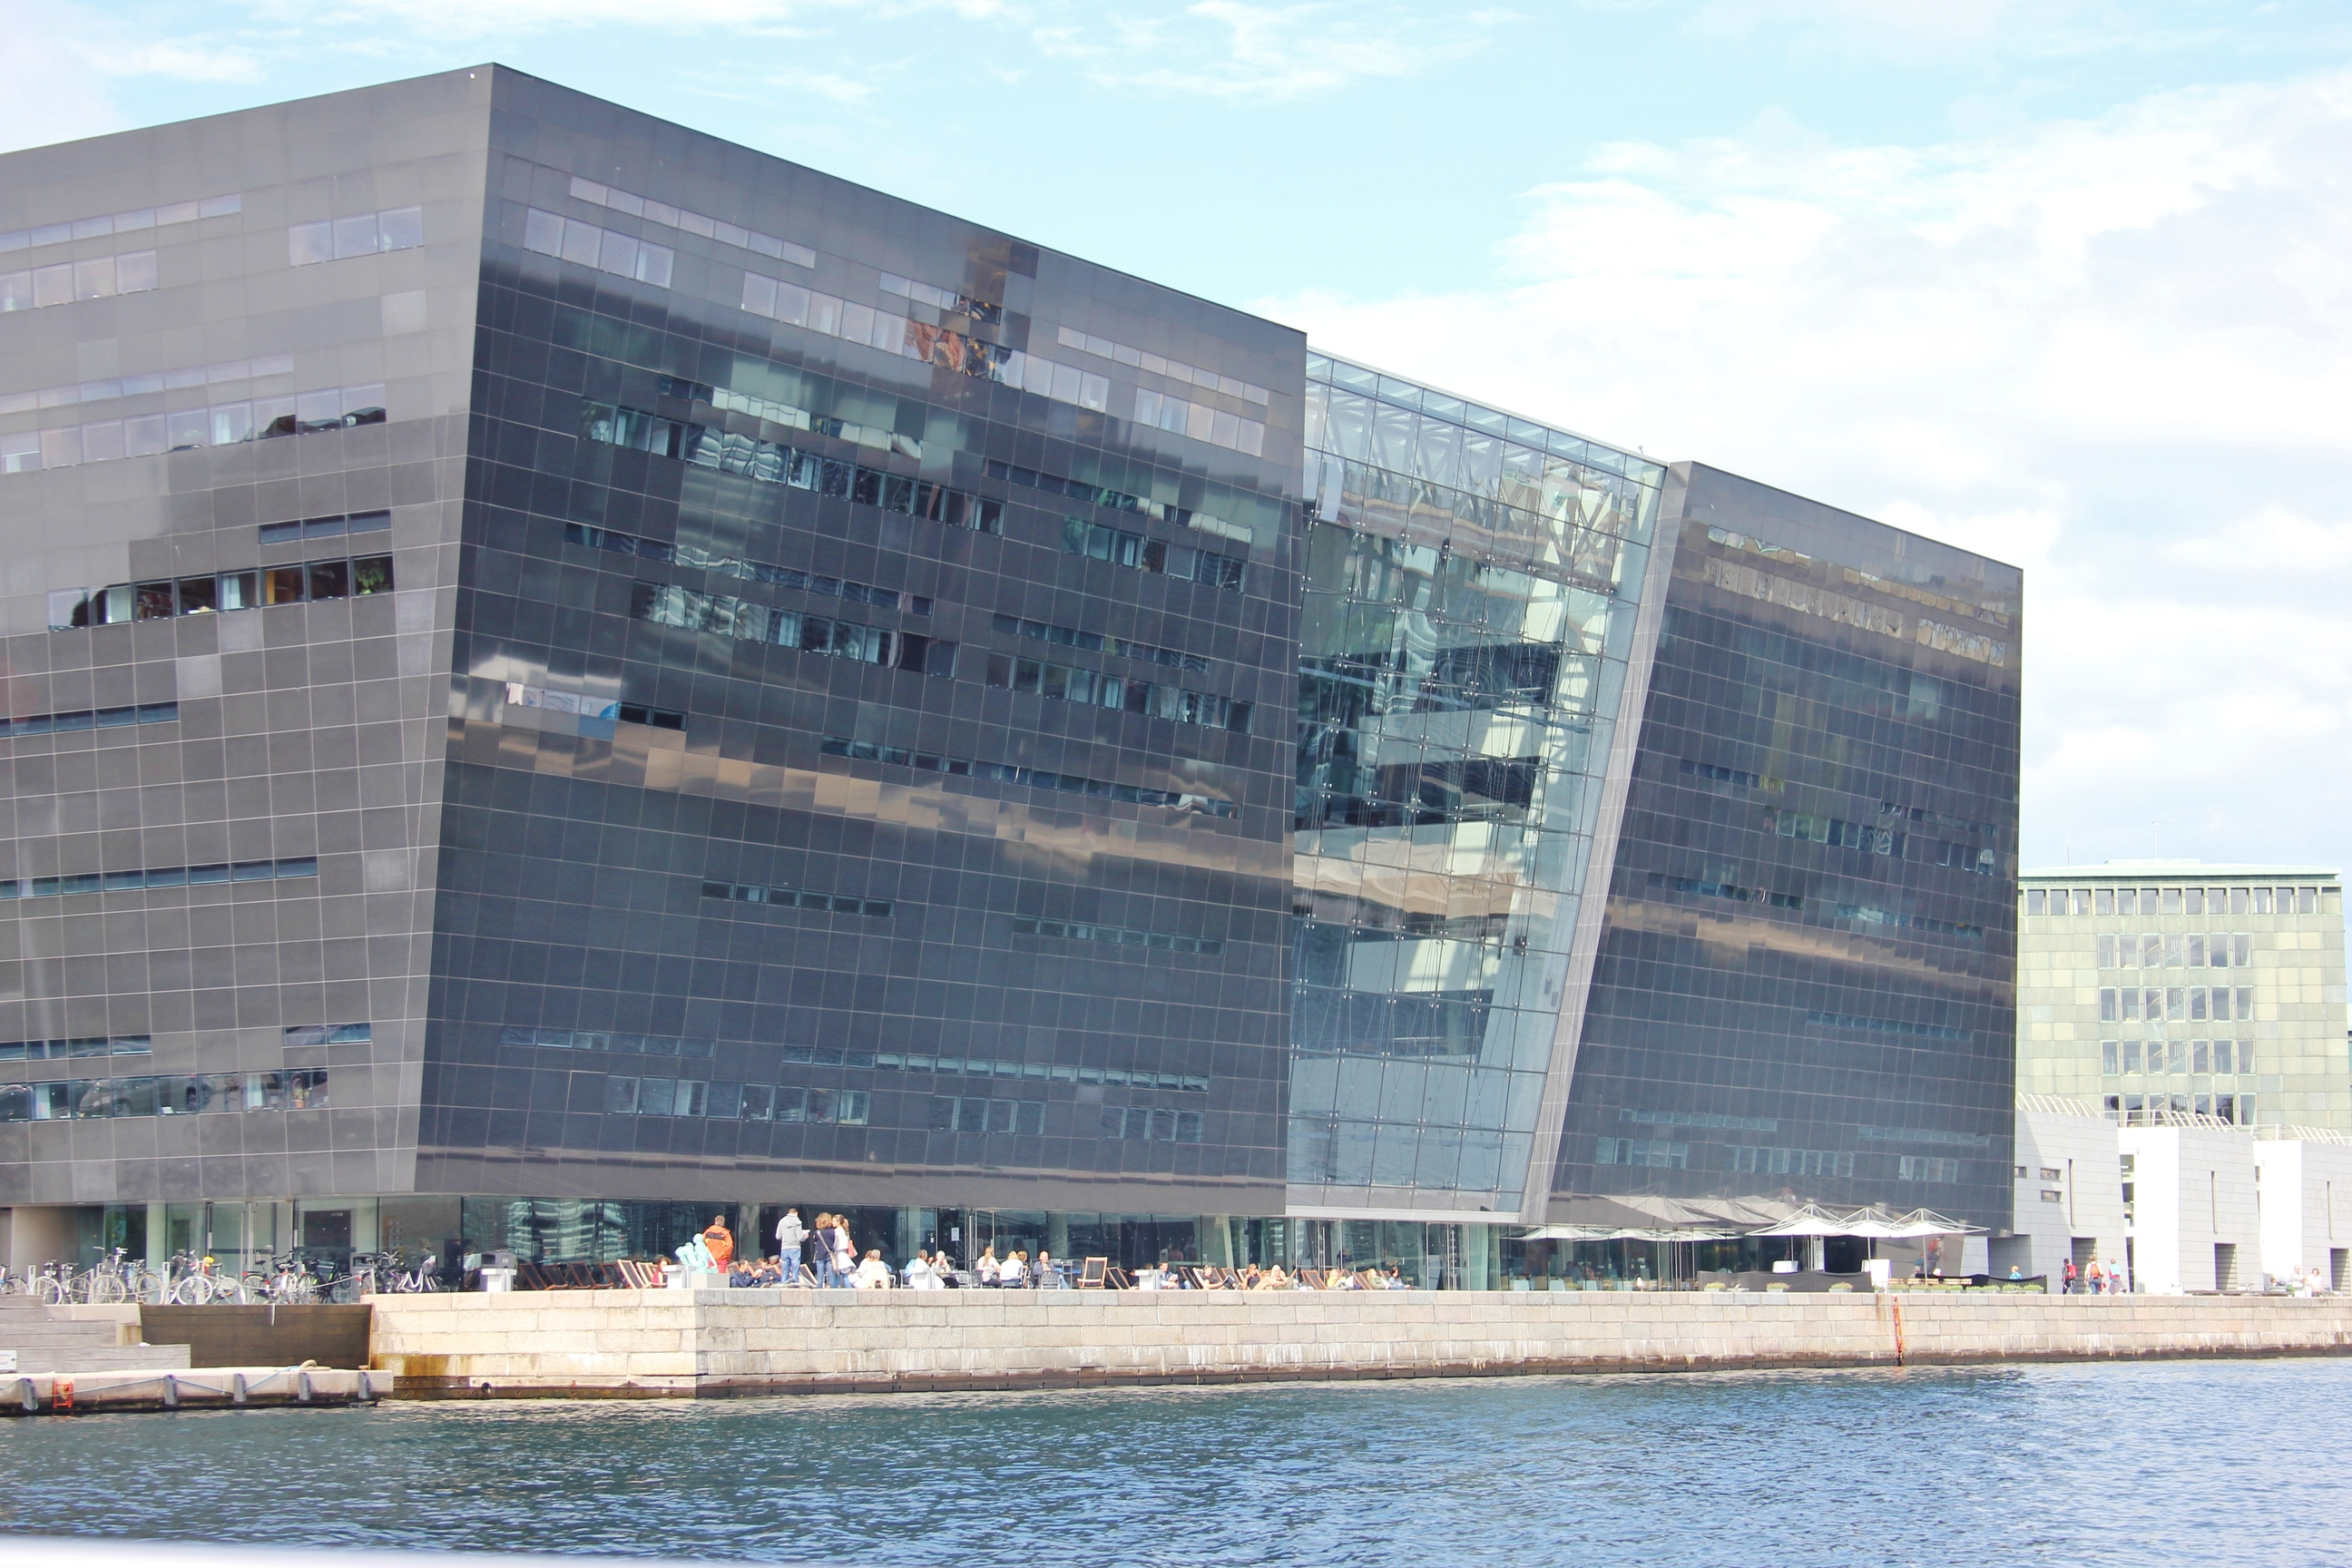 The Black Diamond Library in Copenhagen